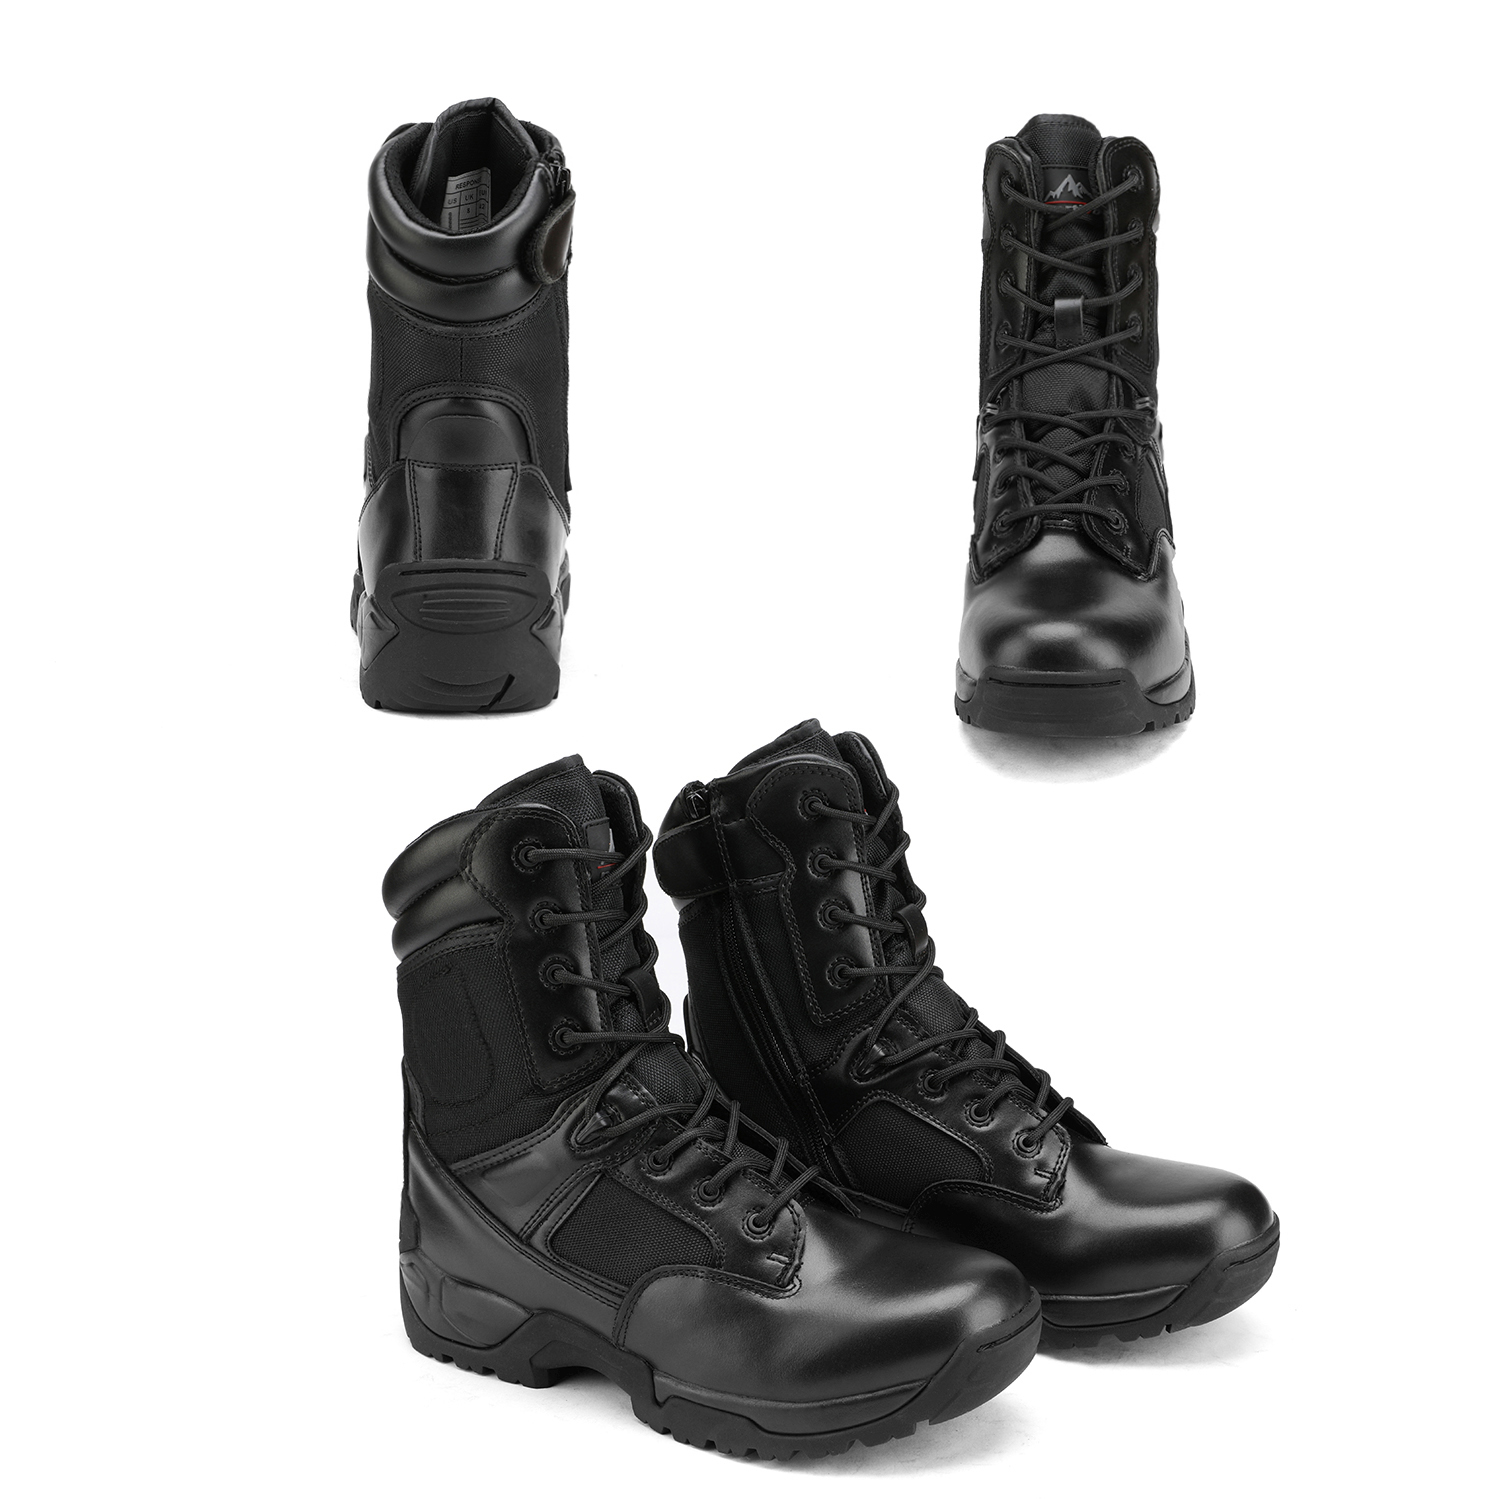 Men-039-s-Military-Tactical-Work-Boots-Hiking-Motorcycle-Combat-Bootie-New thumbnail 10